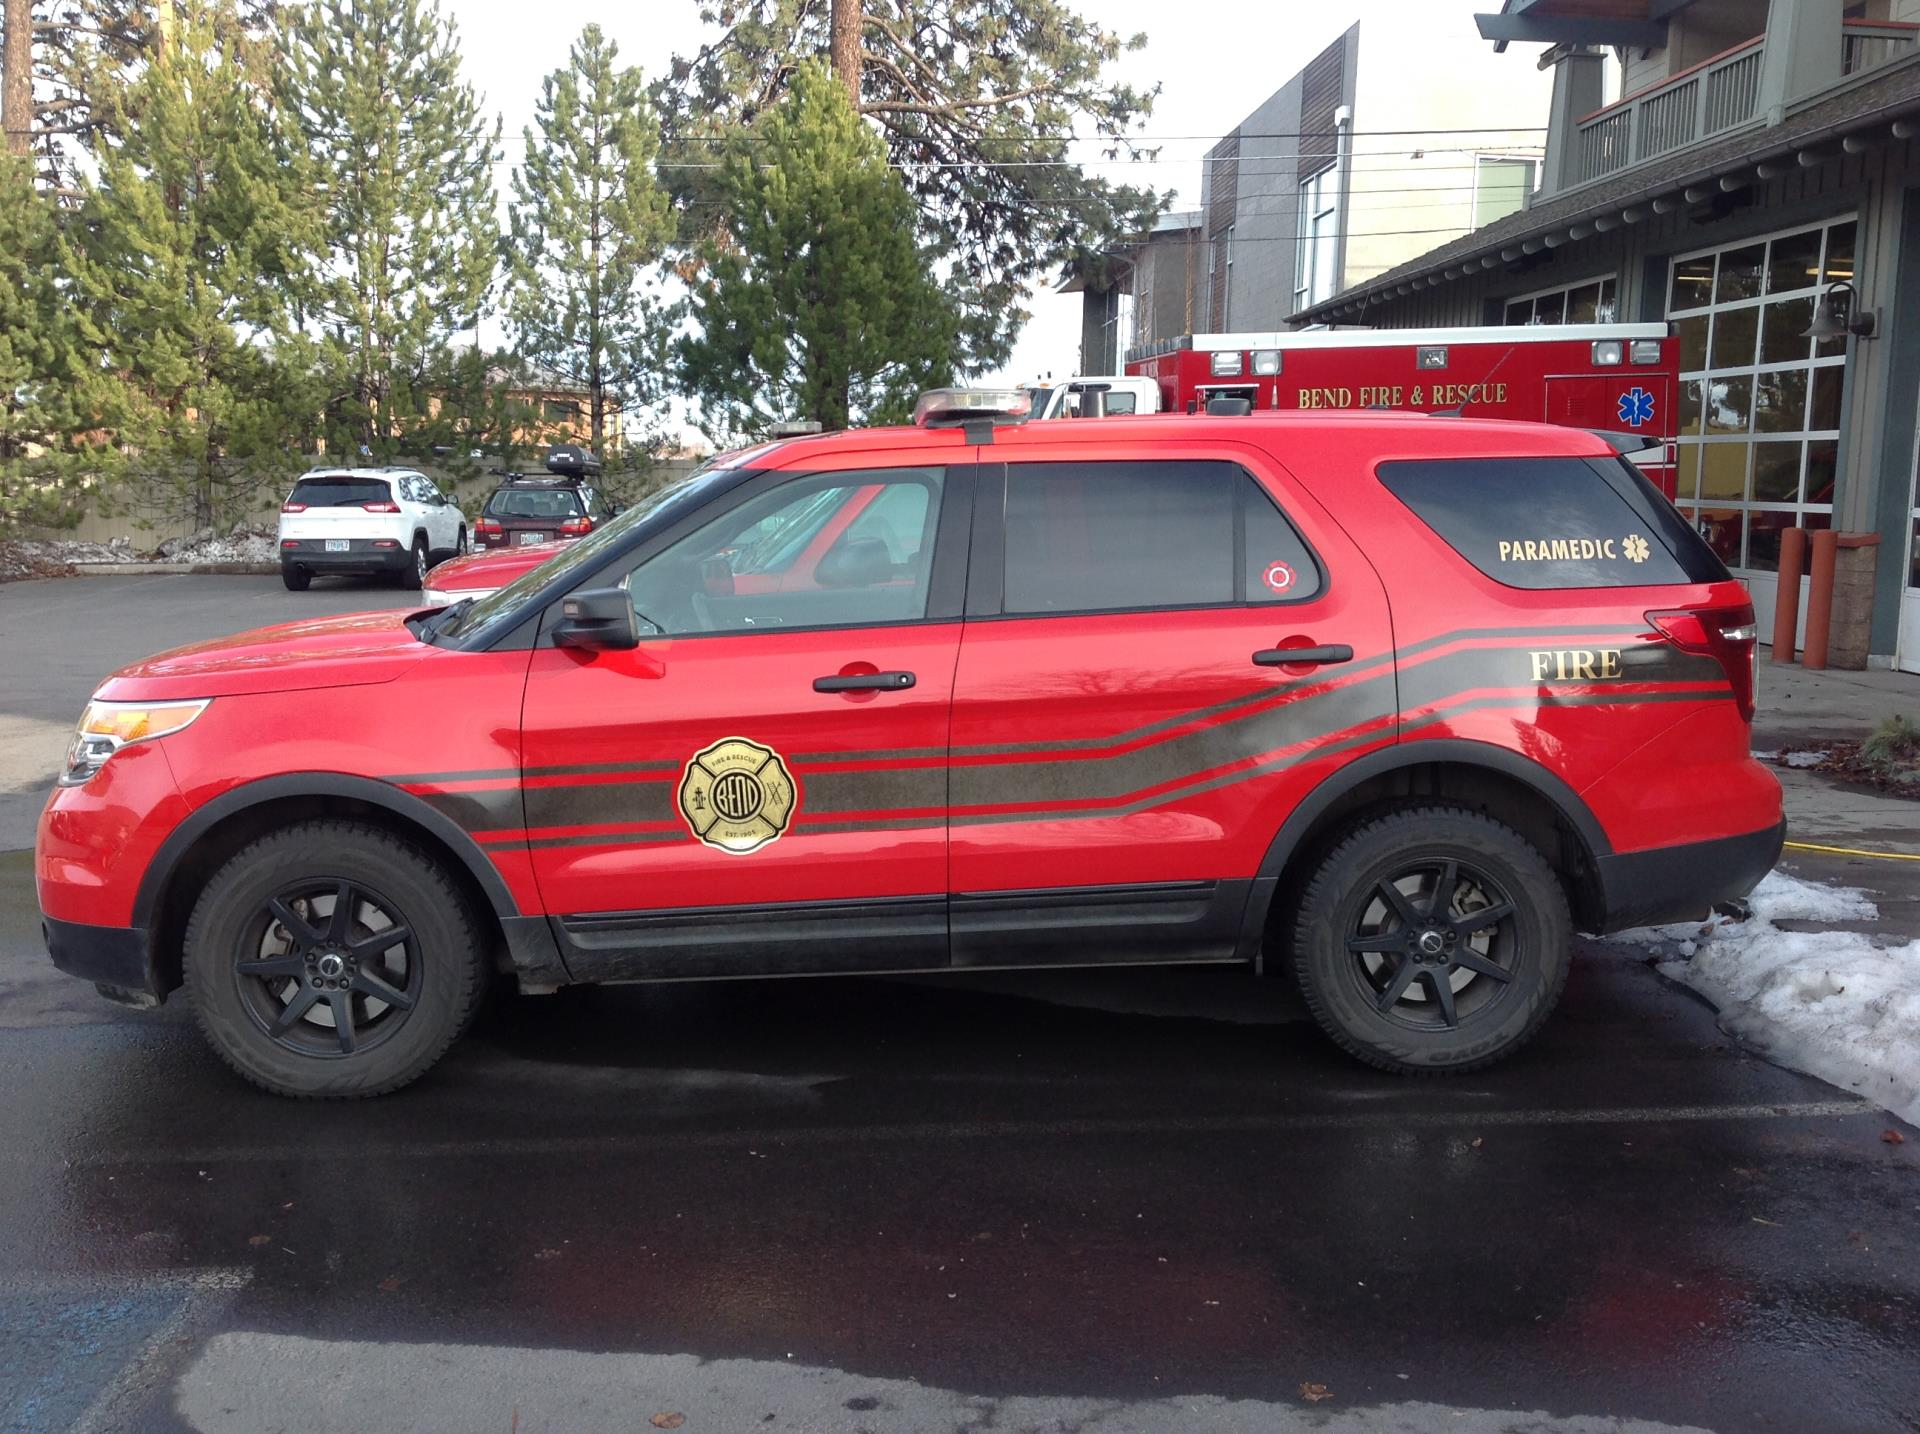 Bend Fire Quick Response Vehicle side view